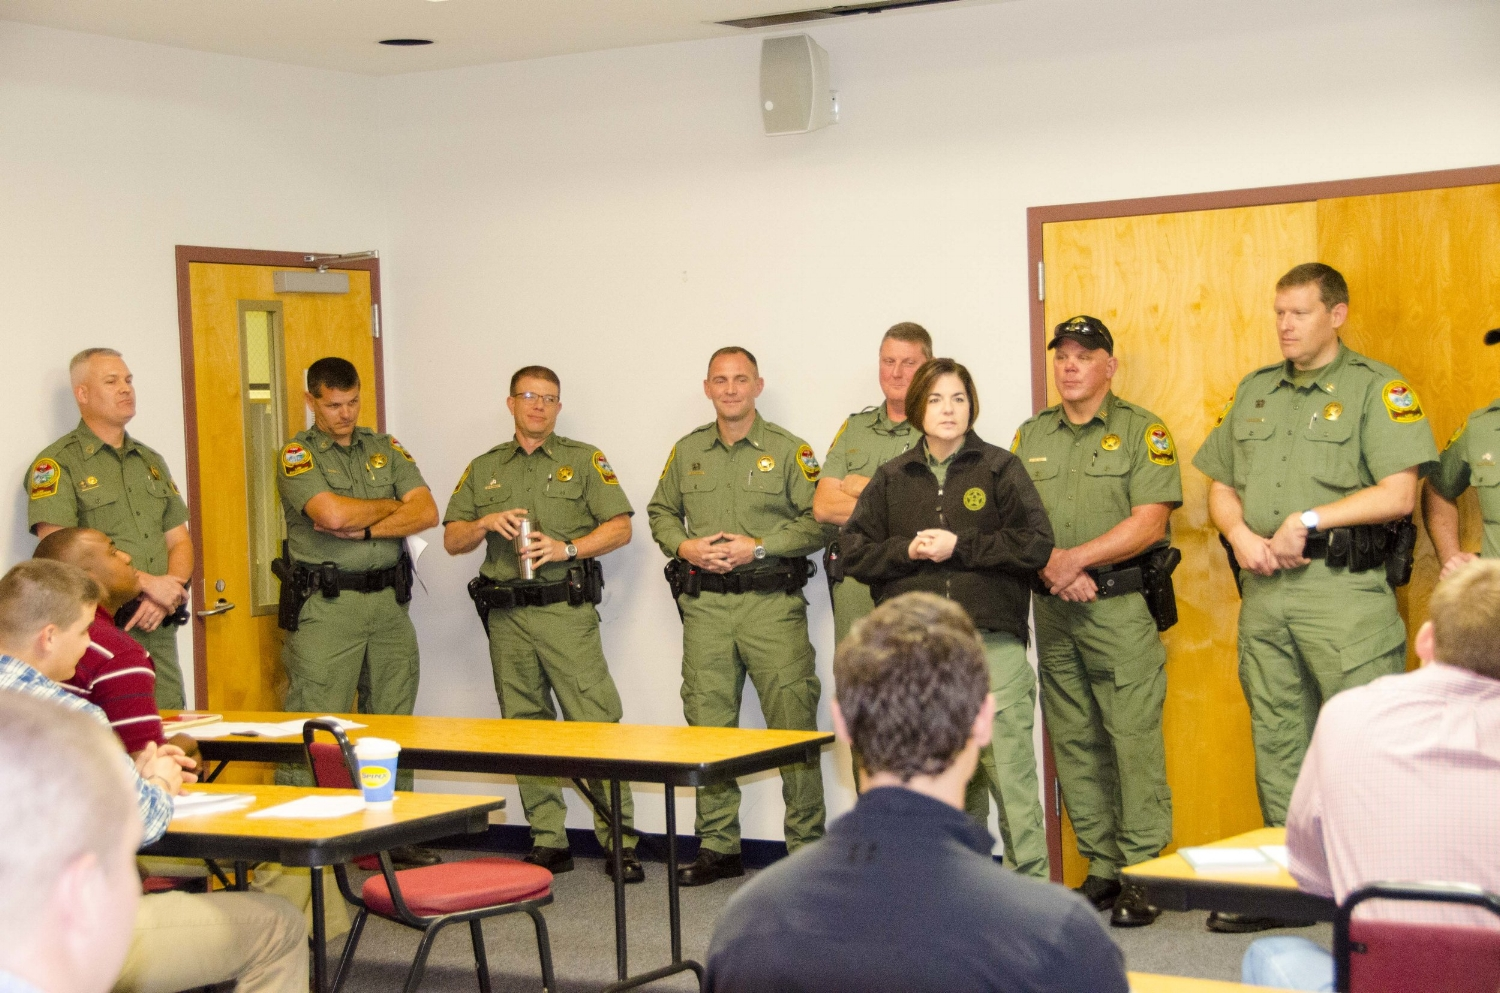 Once in class, the new hires received words of encouragement and advice from their supervisors and other veteran SCDNR Officers -- all of whom once went through the same grueling application process to wear the green uniform.